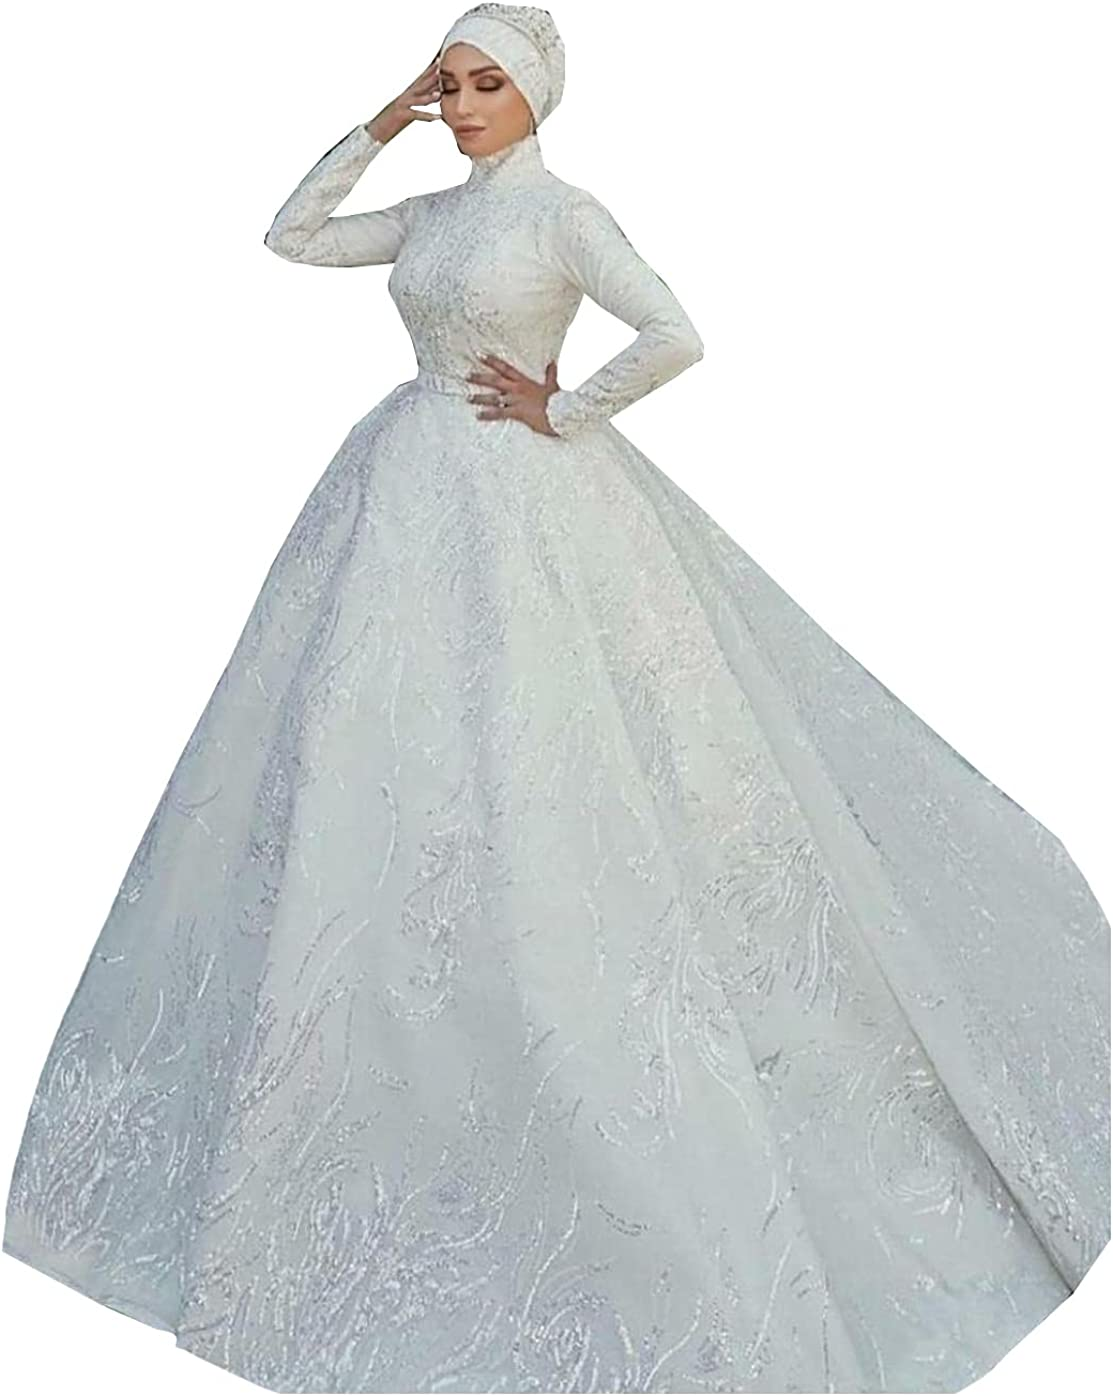 Women's Muslim Arabic Sequins Bridal Ball Gown with Train Long Sleeve Lace Wedding Dresses for Bride Plus Size